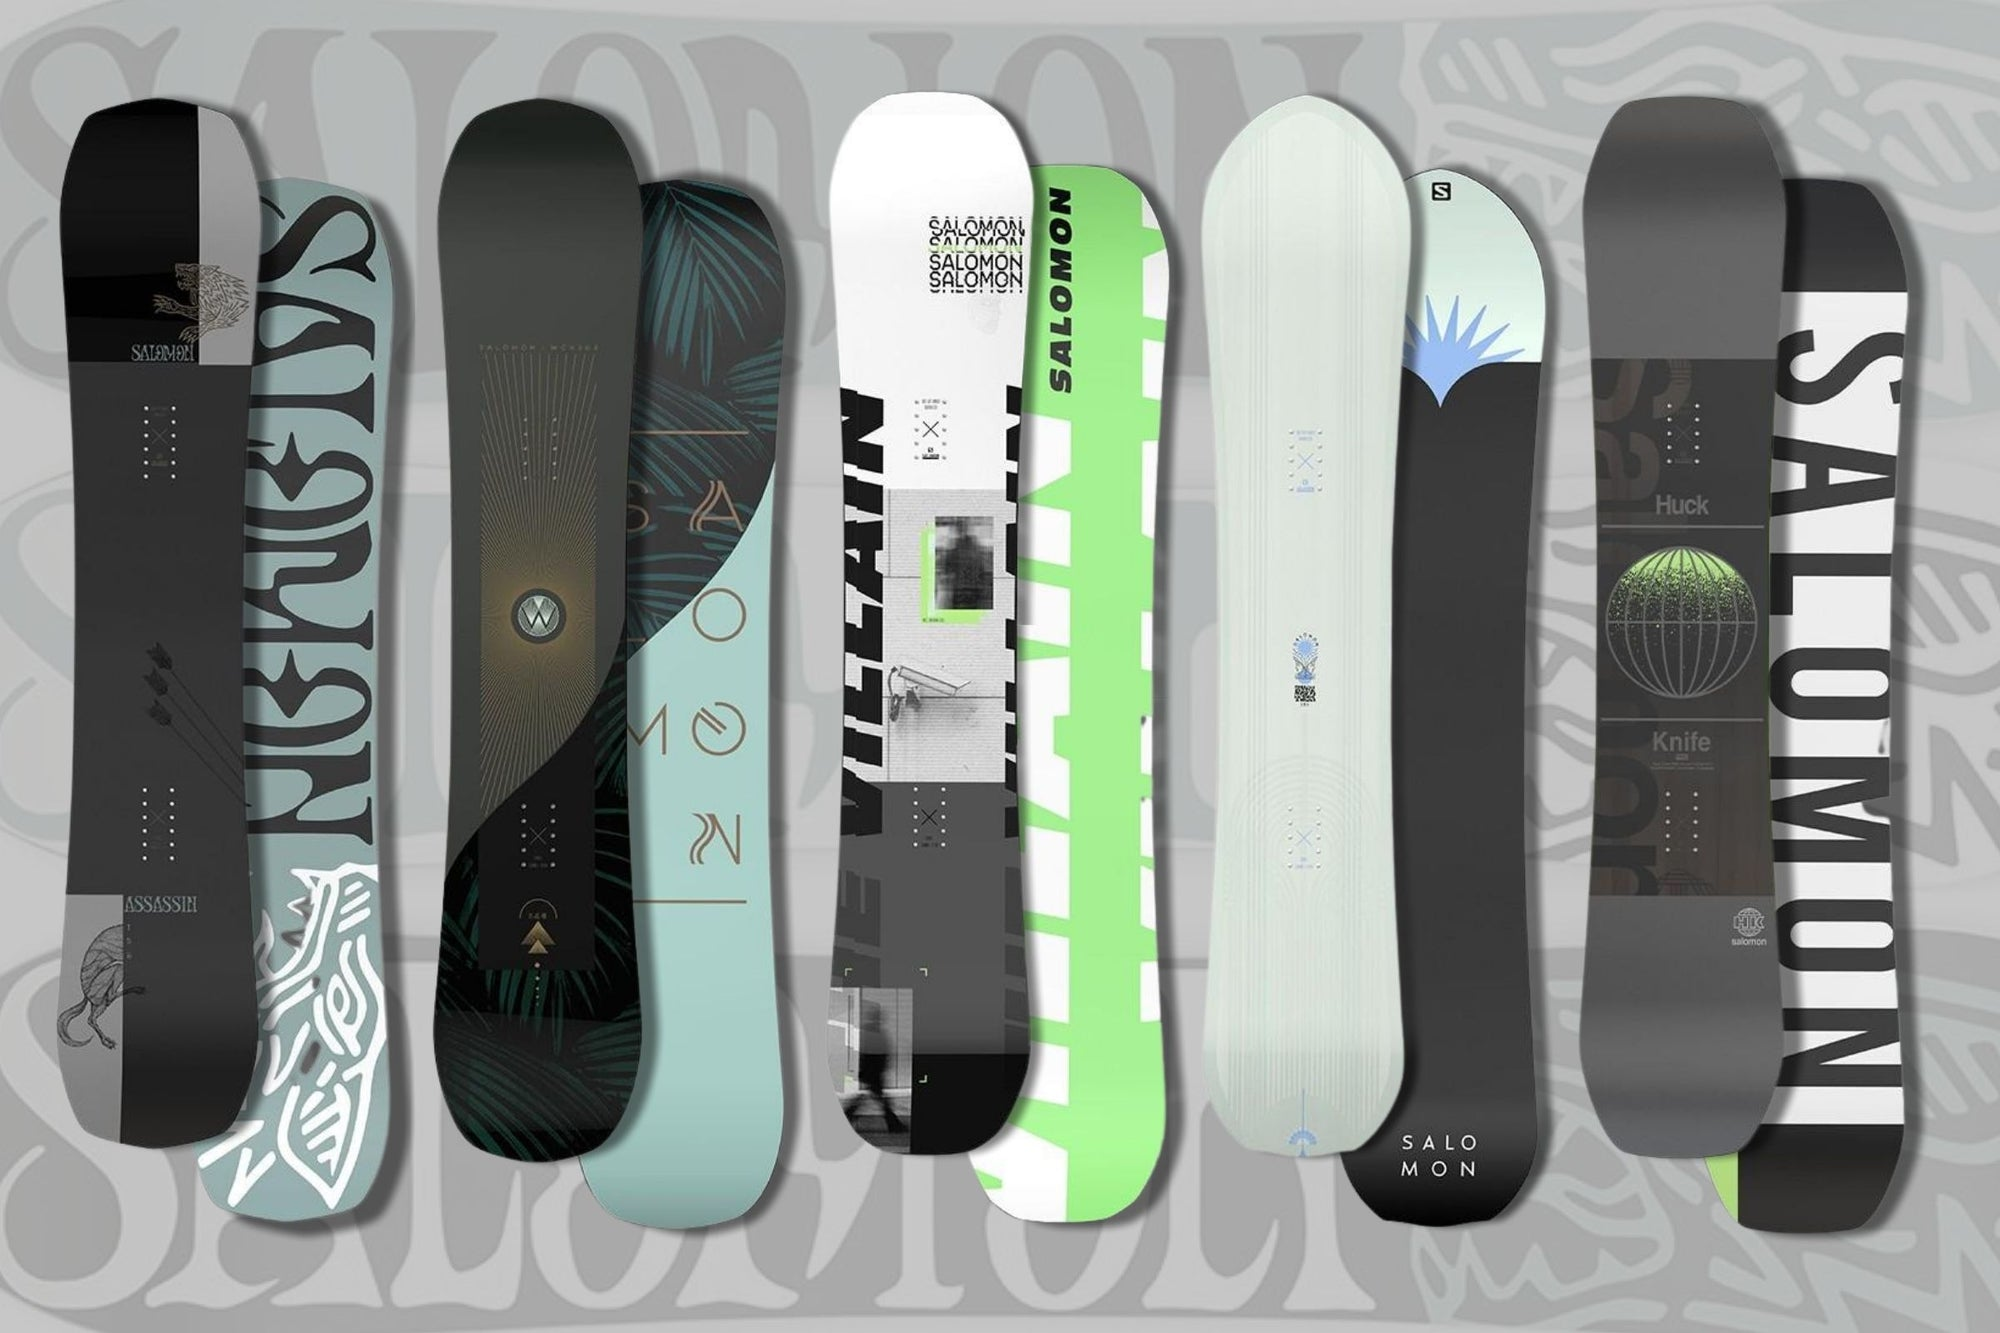 2022 Salomon Snowboards Overview